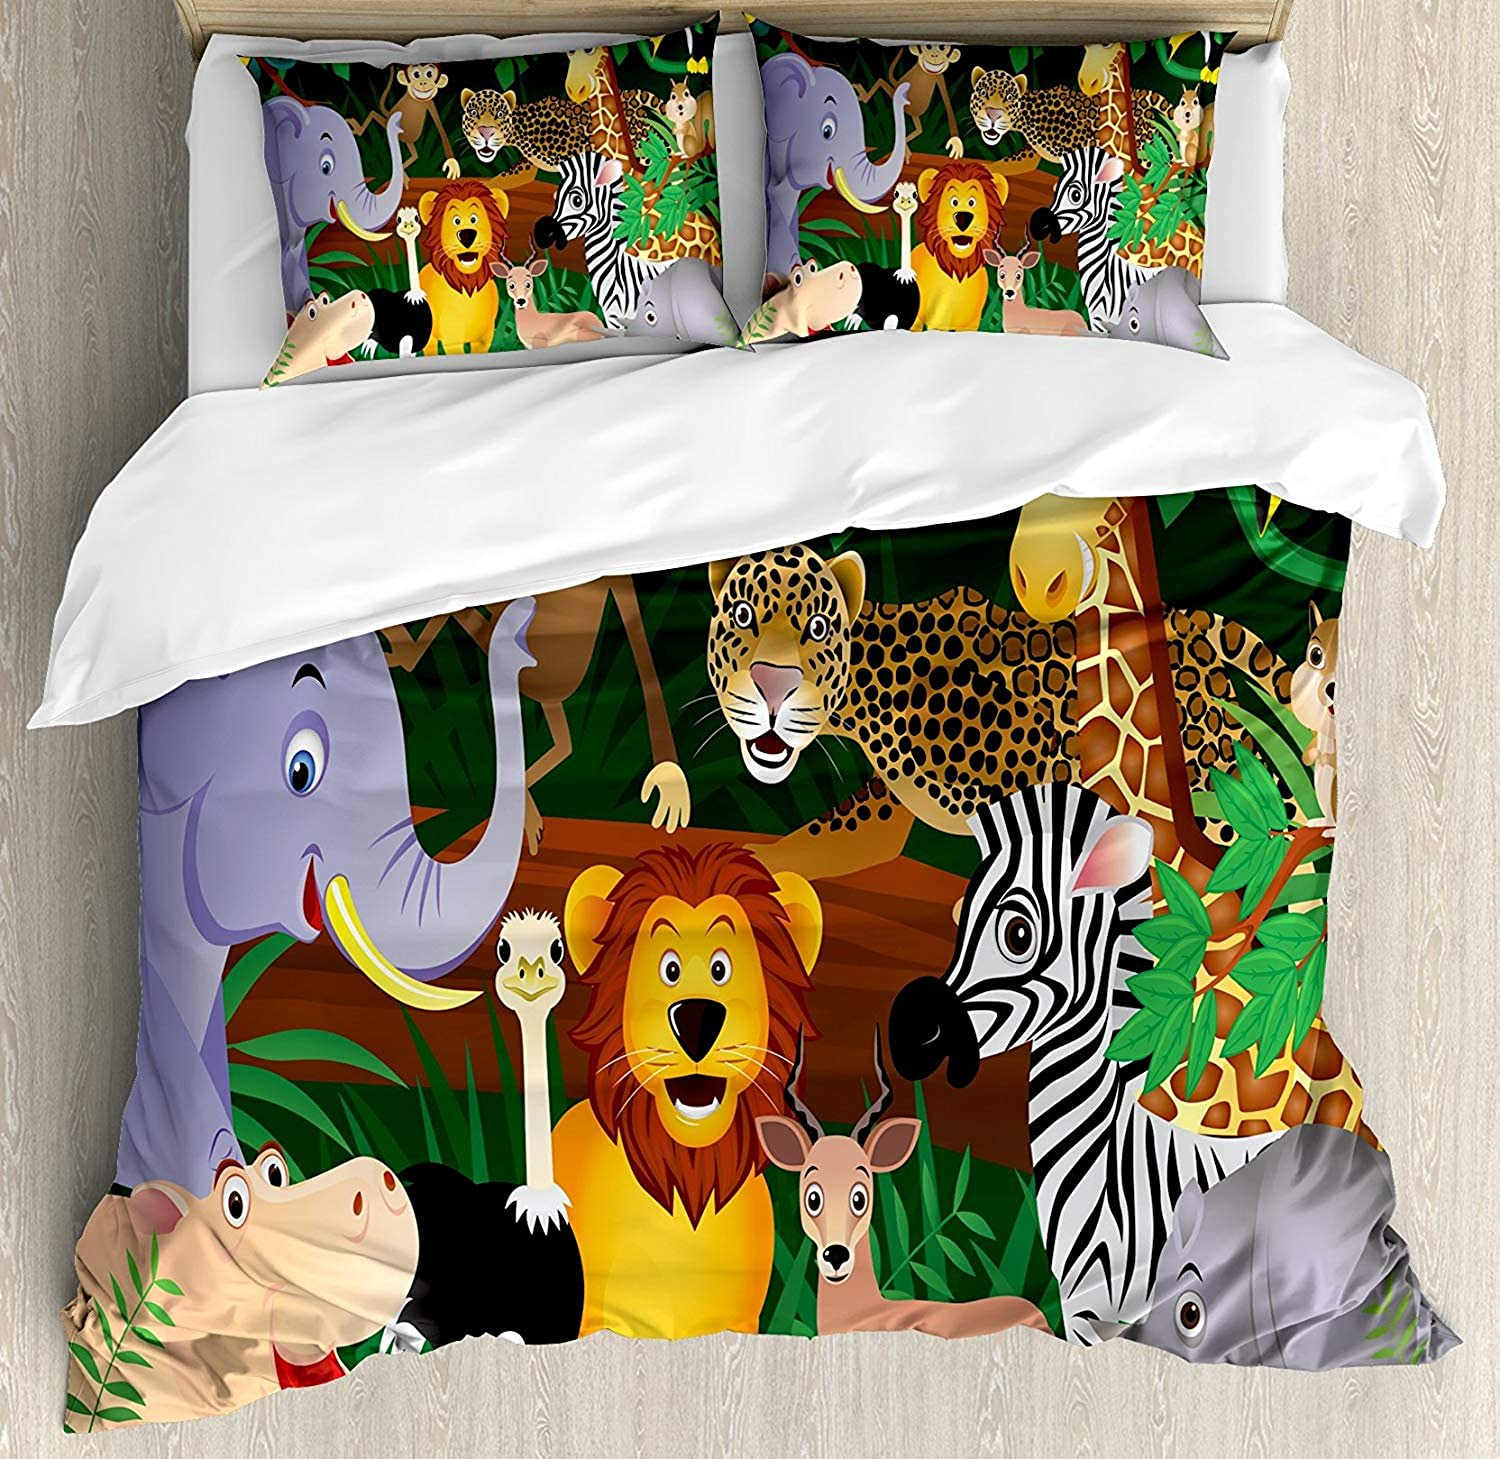 DaringOne Zoo Duvet Cover Set Twin Animals in The Jungle Funny Expressions Exotic Comic Cheer Natural Habitat Illustration Bedding Set 4 Piece Lightweight Bed Comforter Covers Includes 2 Pillow Shams